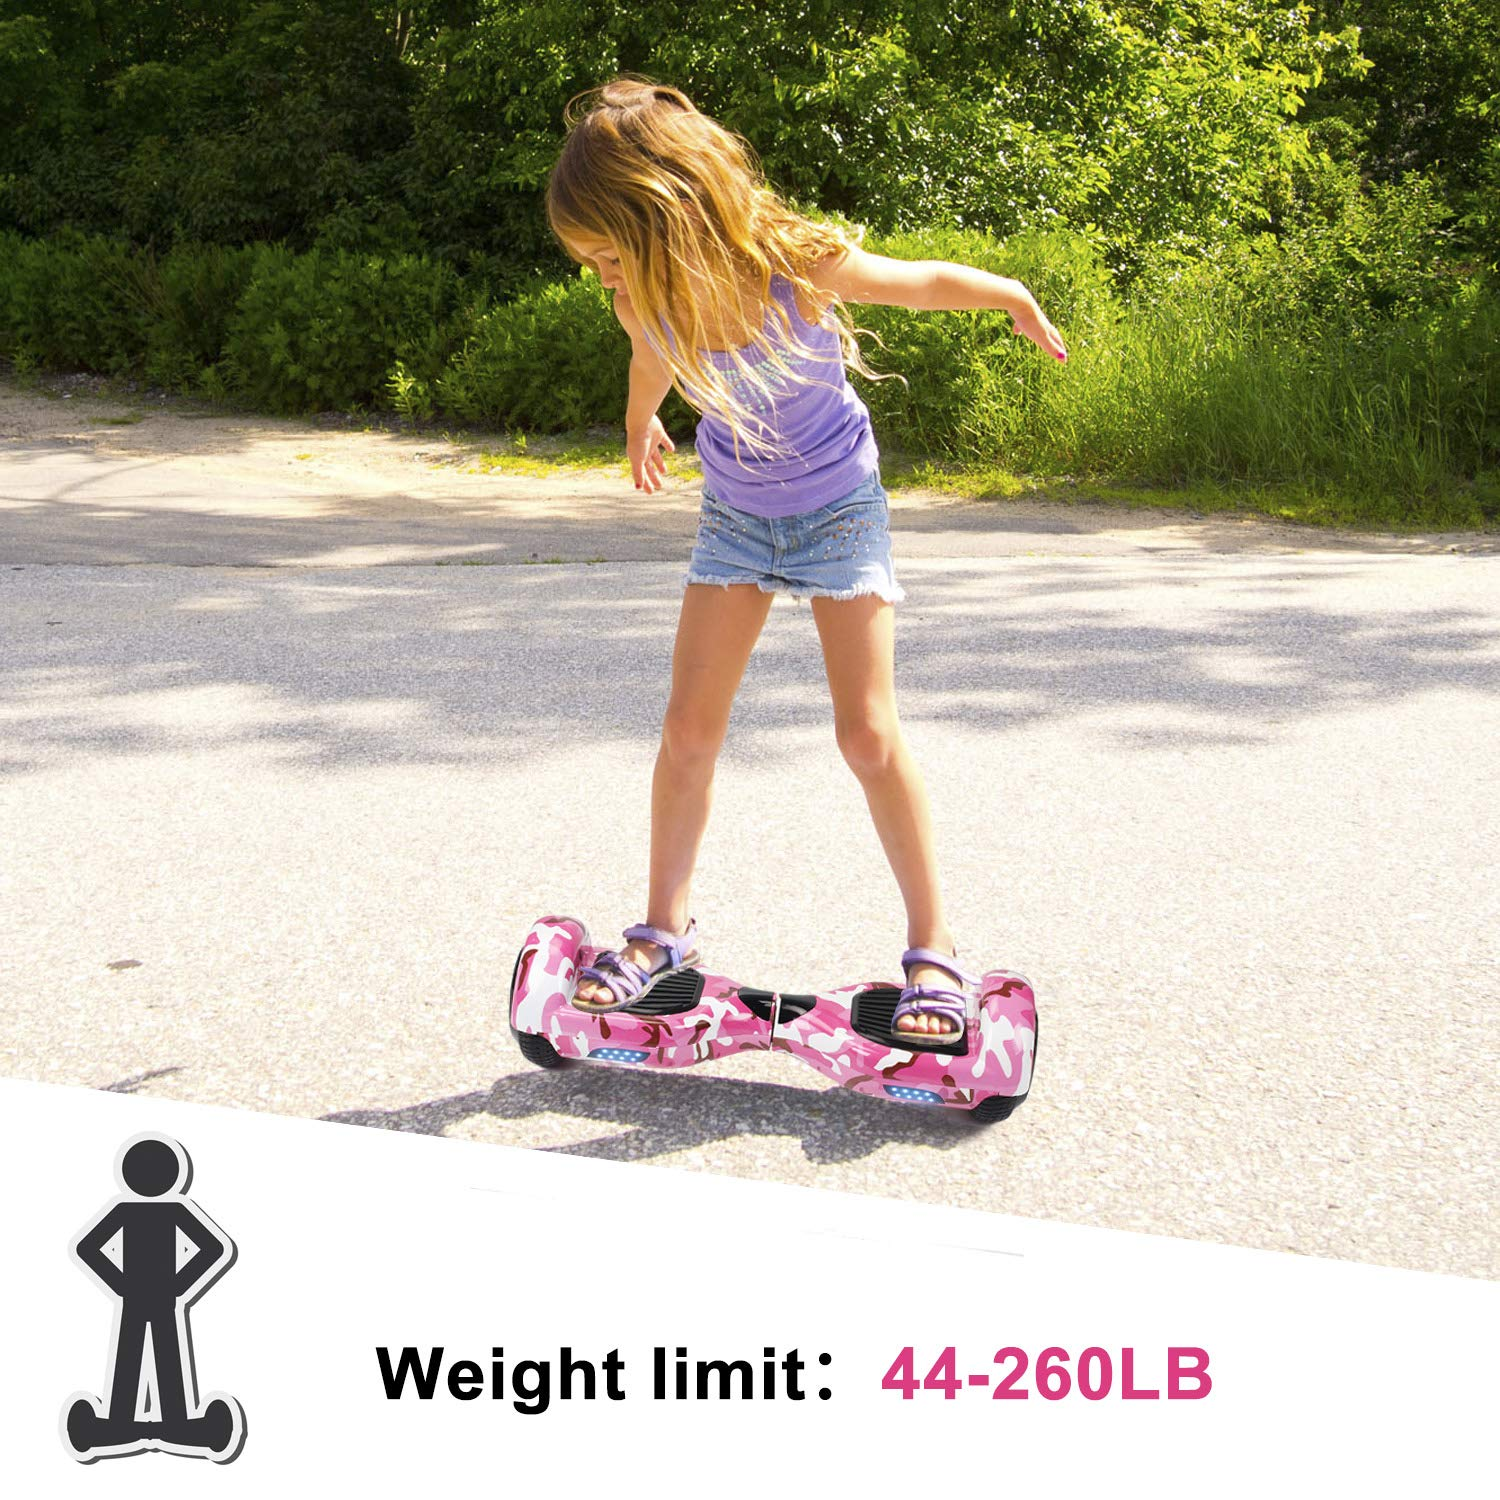 SISIGAD Hoverboard Self Balancing Scooter 6.5'' Two-Wheel Self Balancing Hoverboard with LED Lights Electric Scooter for Adult Kids Gift UL 2272 Certified Fun Edition - Pink Camou by SISIGAD (Image #6)